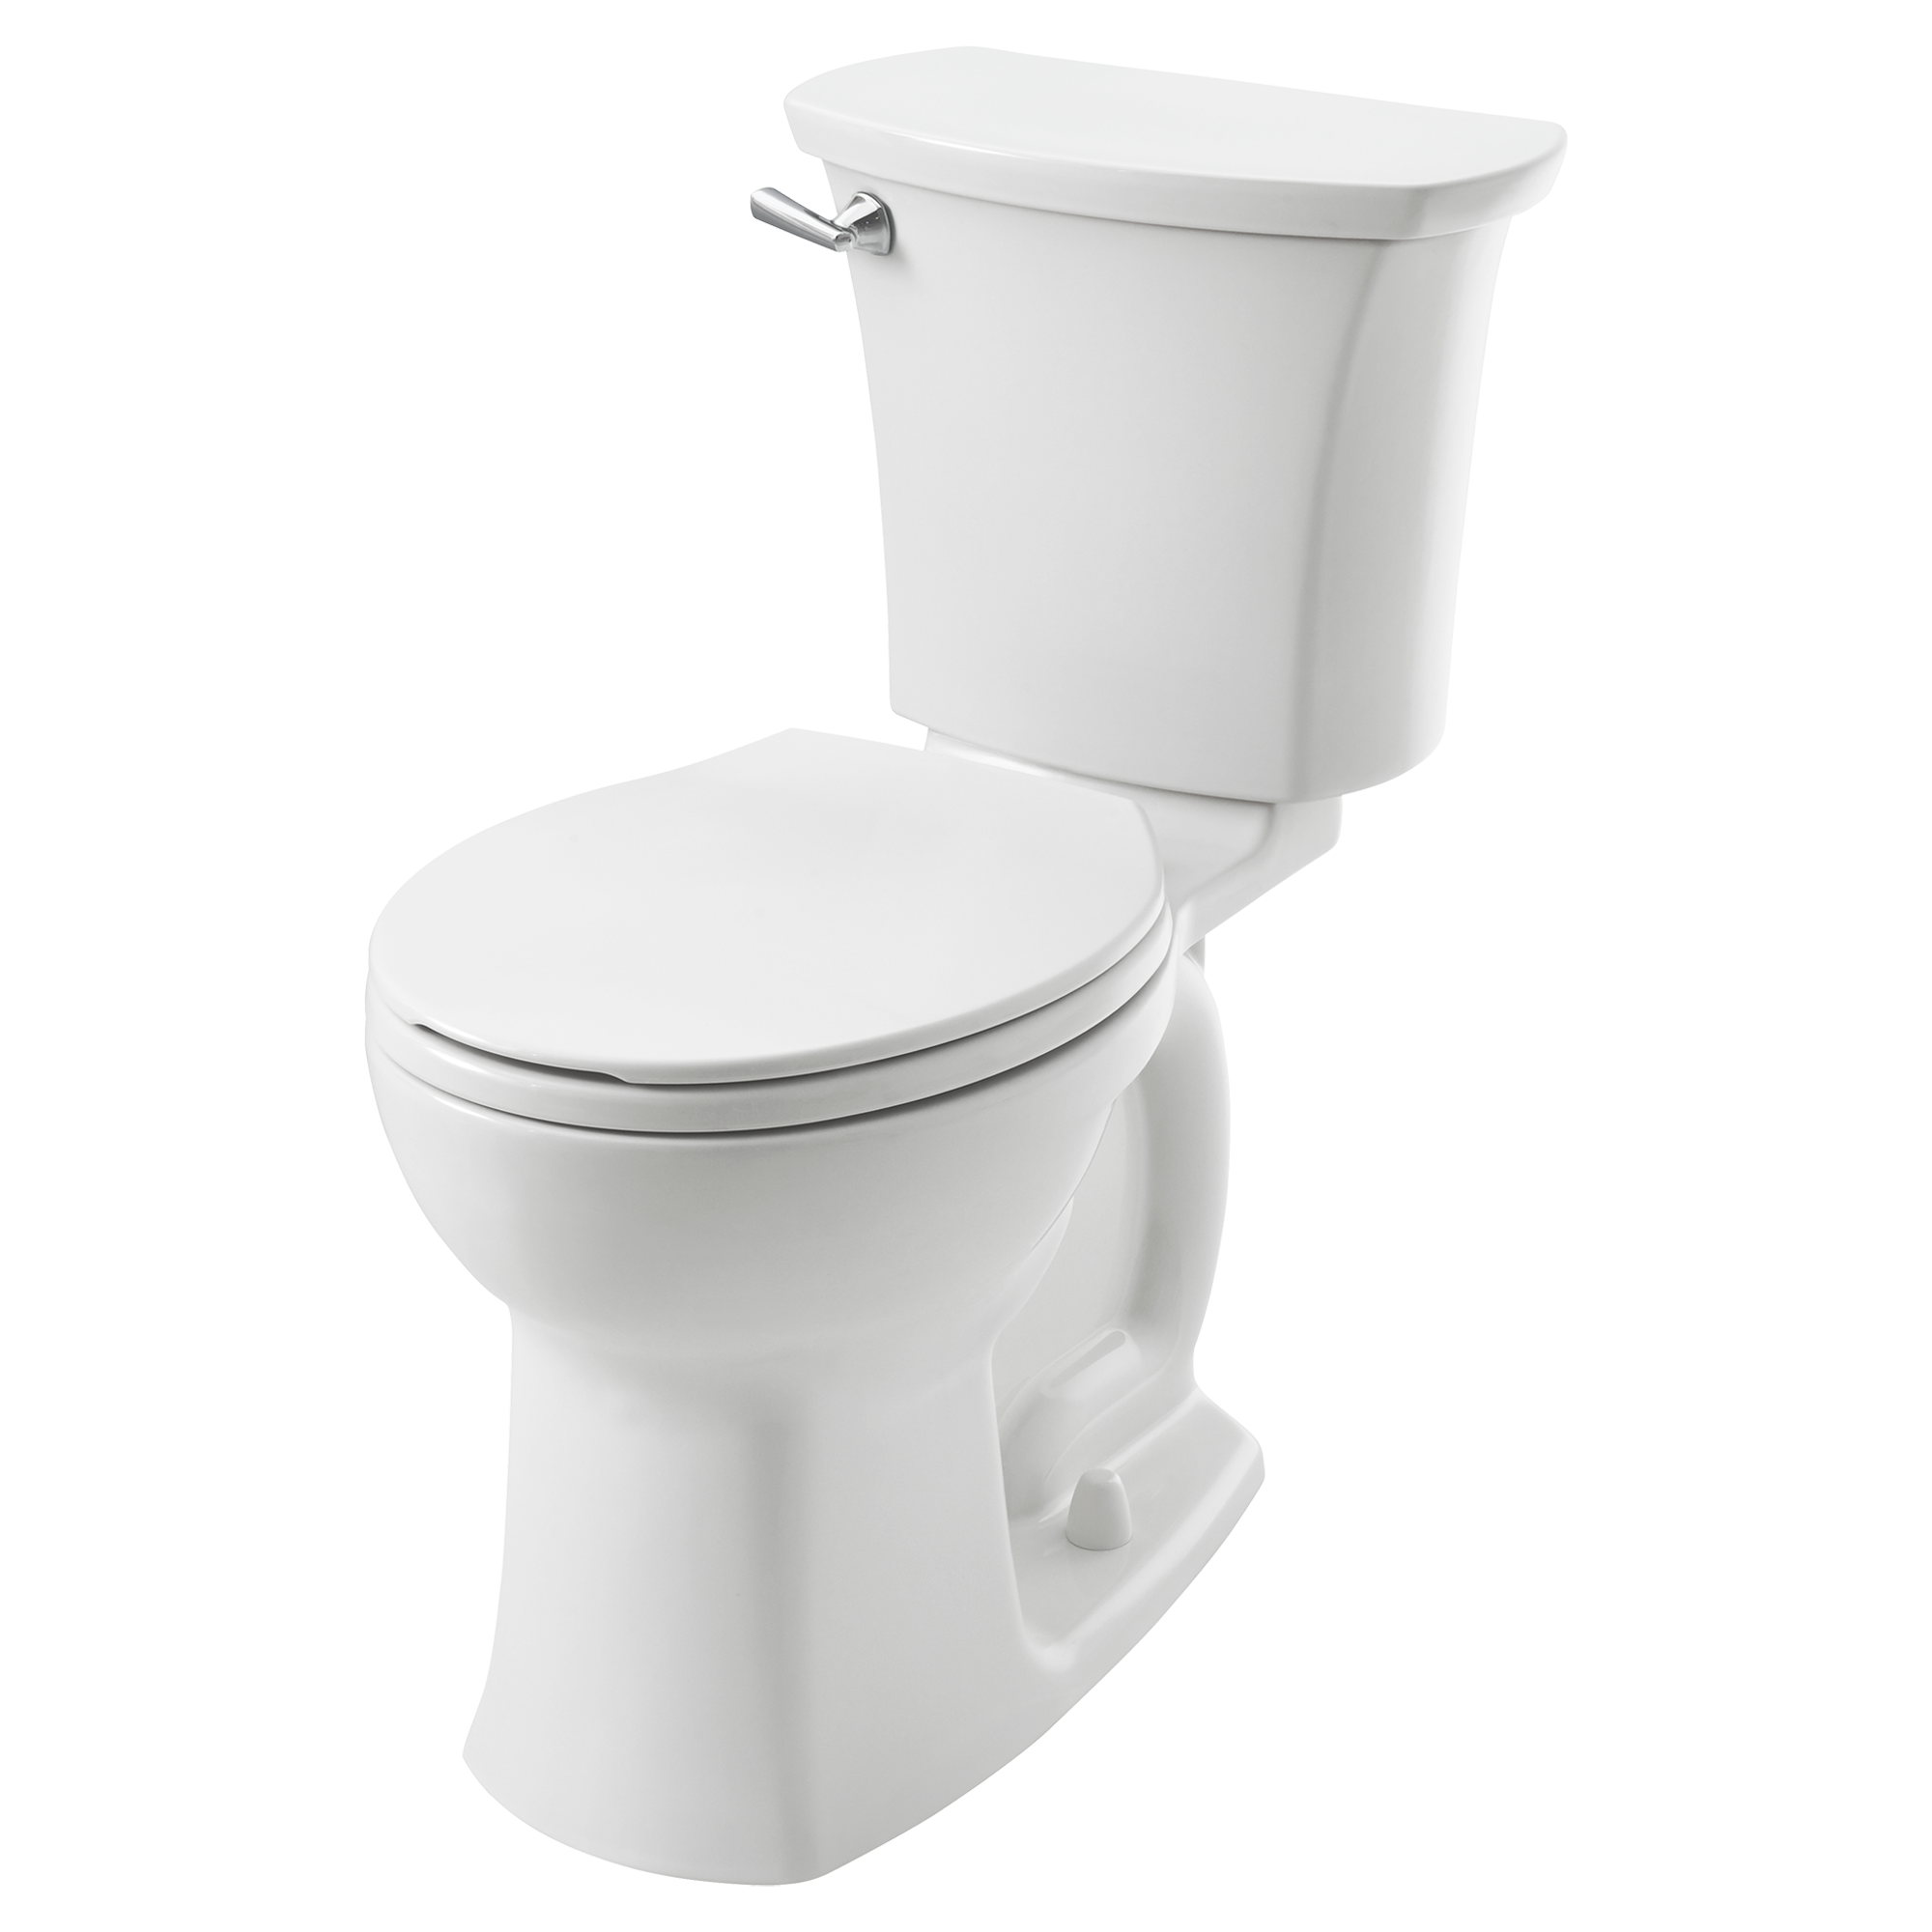 10 Inch Rough In Toilet Canada The Edgemere Right Height Toilet From American Standard Features A